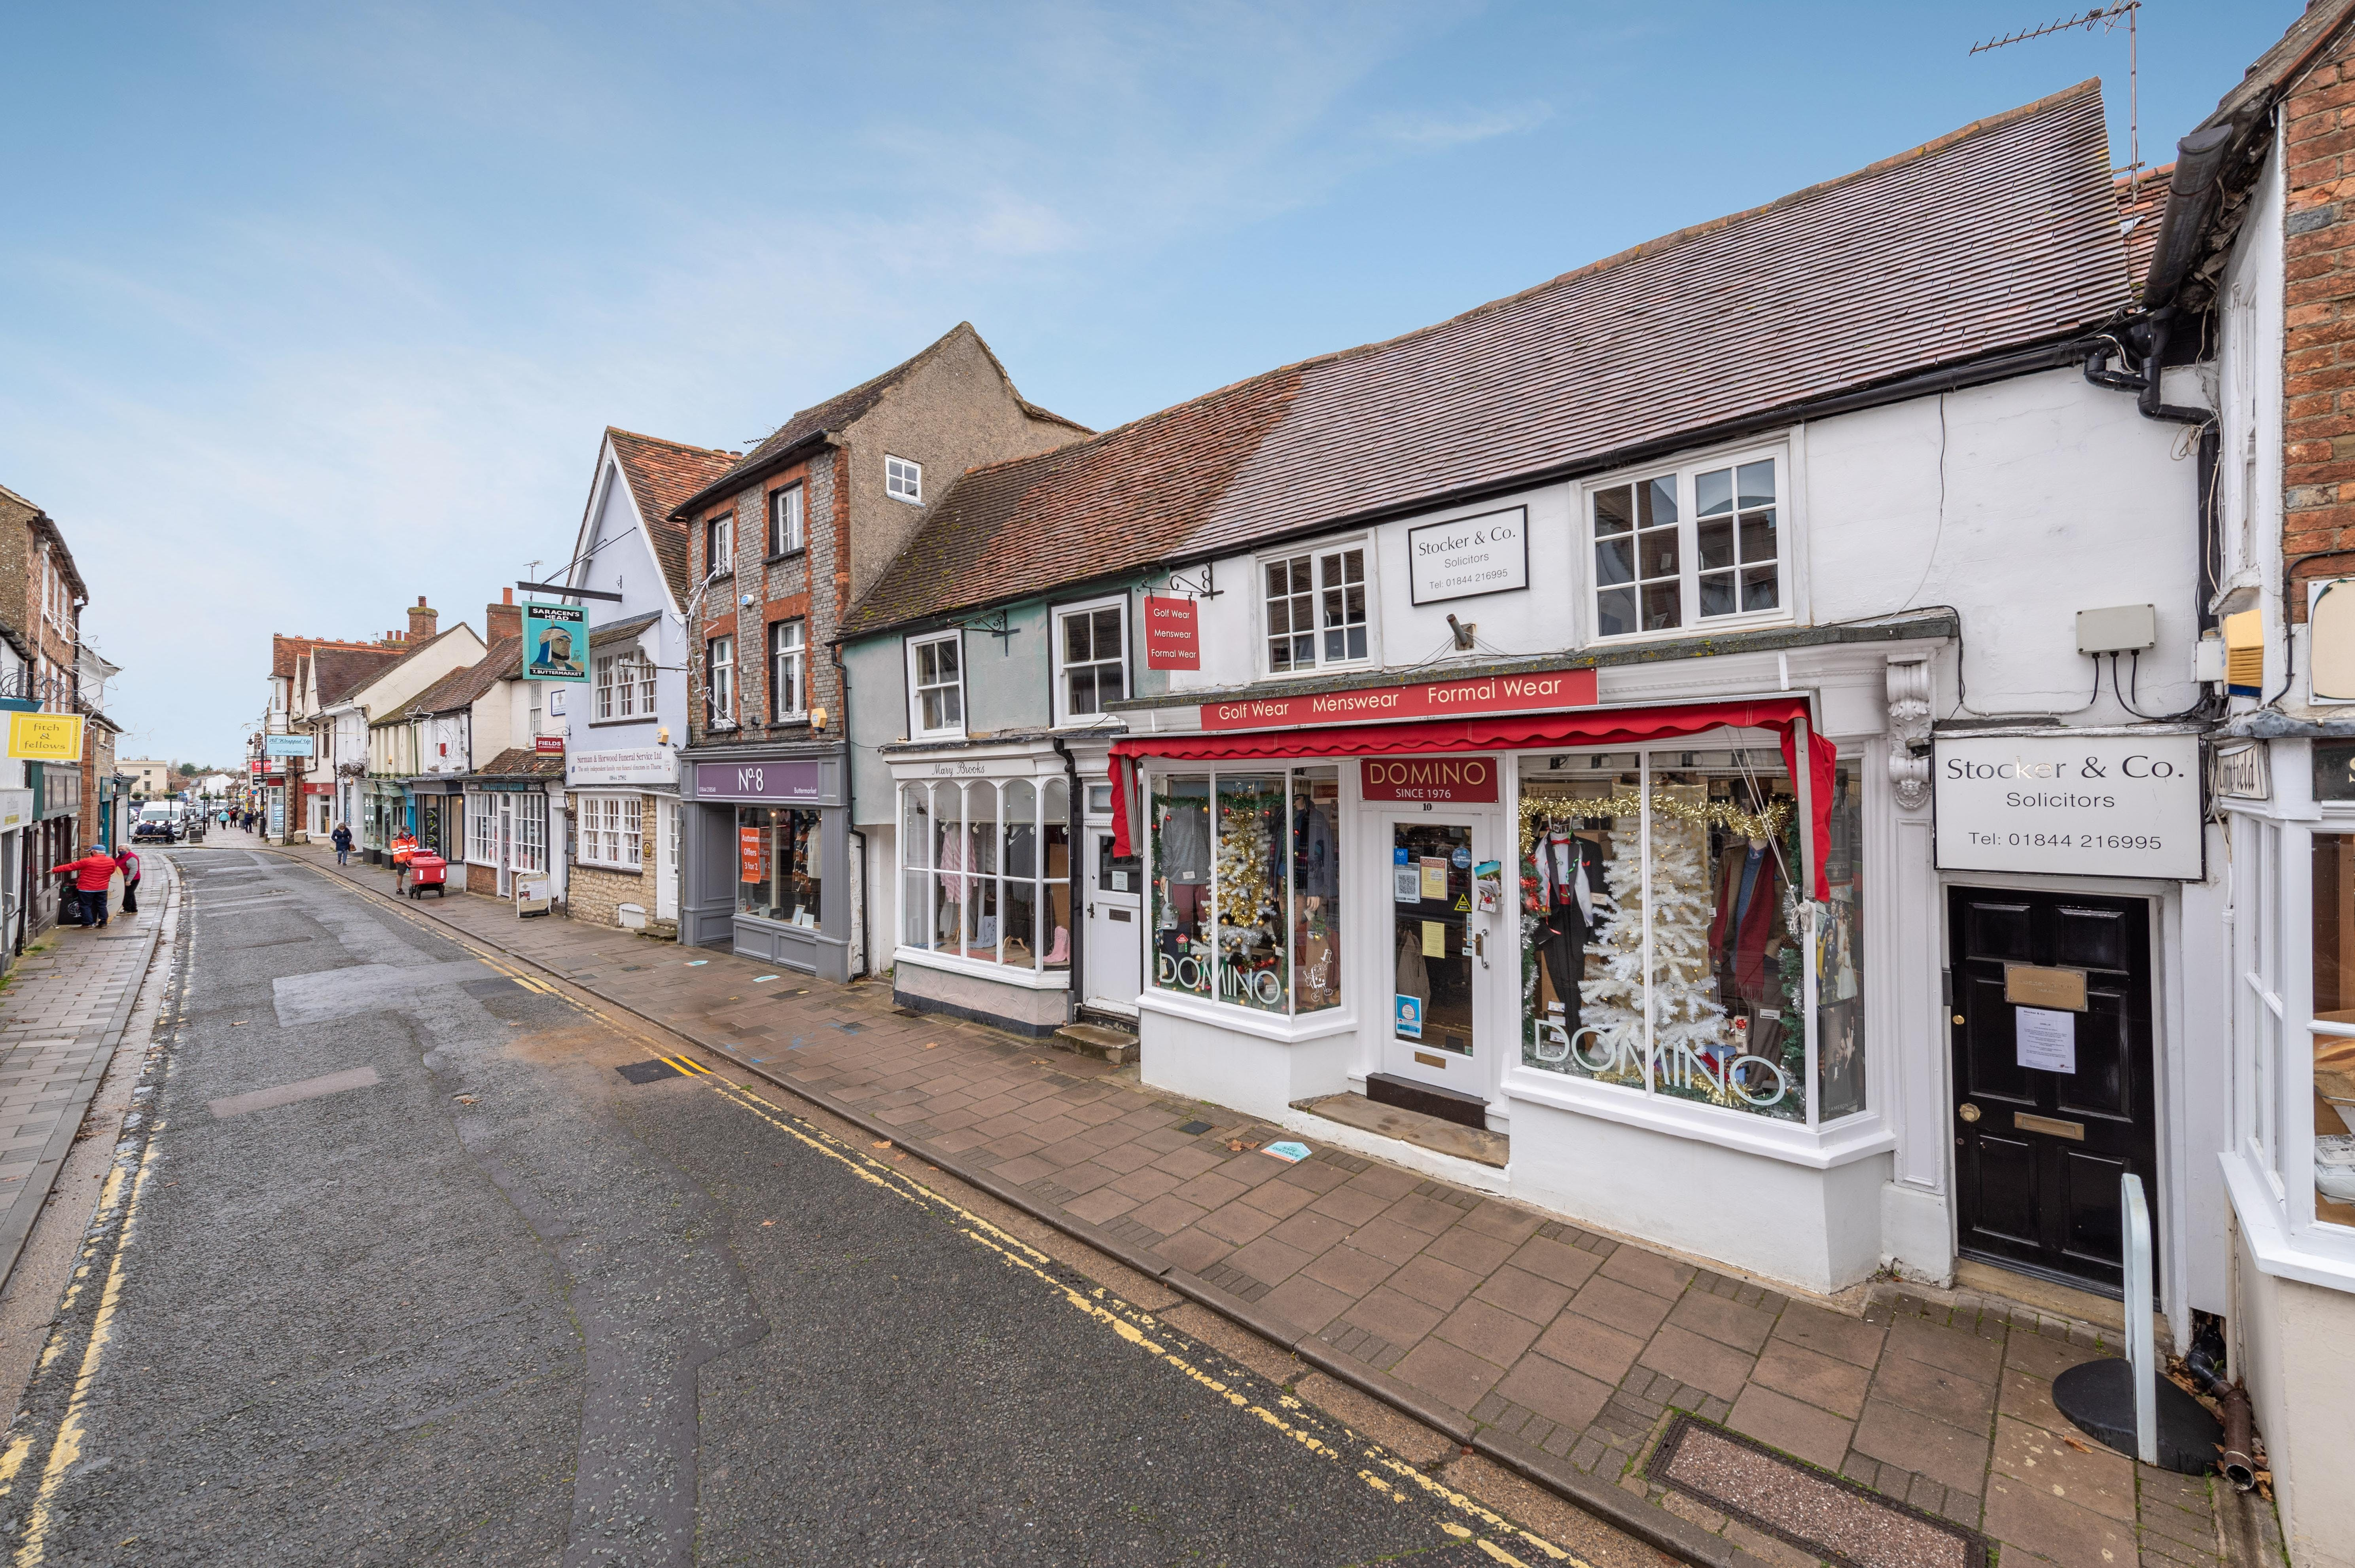 10-10A Buttermarket, Thame, Investment / Retail / Office For Sale - 10_10A Buttermarket-11.jpg